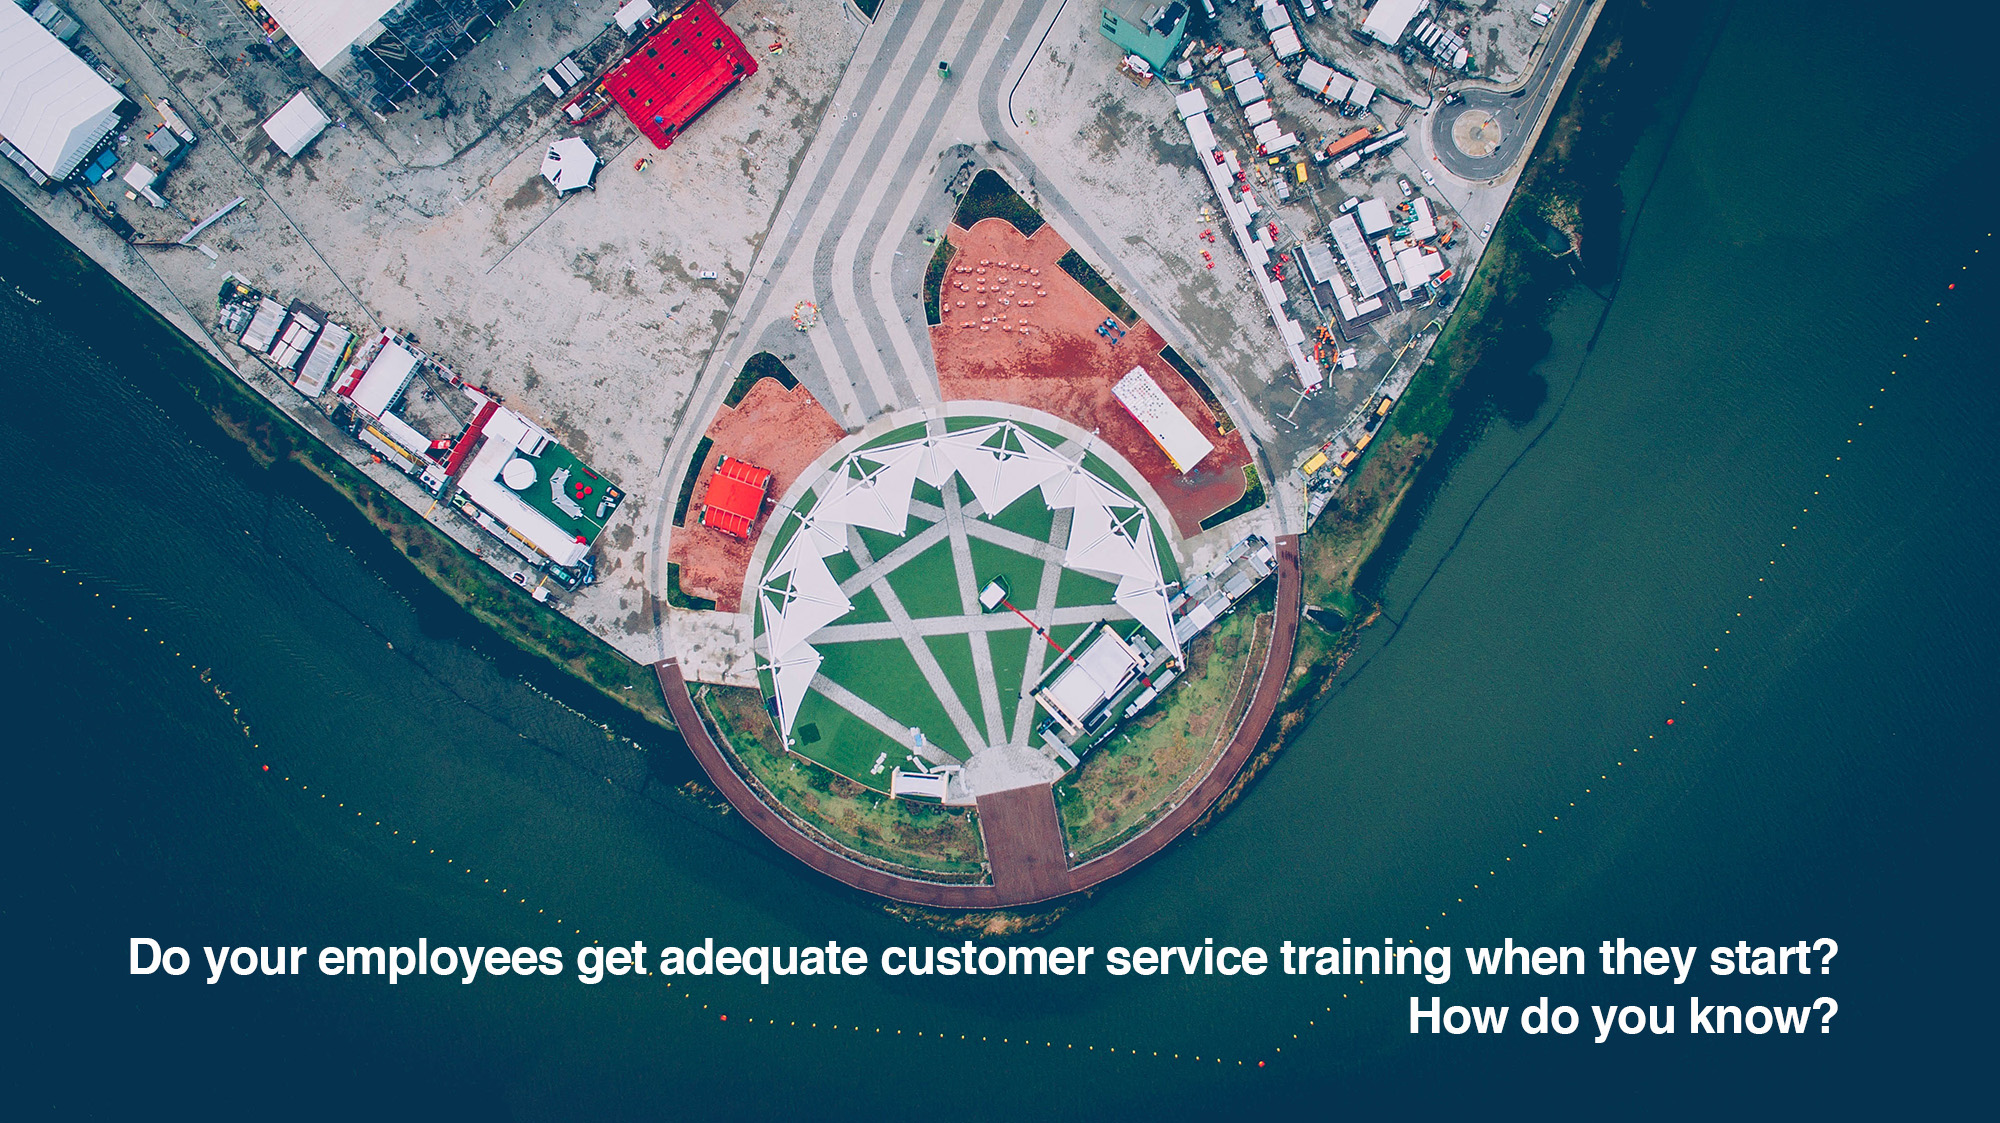 do-your-employees-get-adequate-customer-service-training-when-they-start